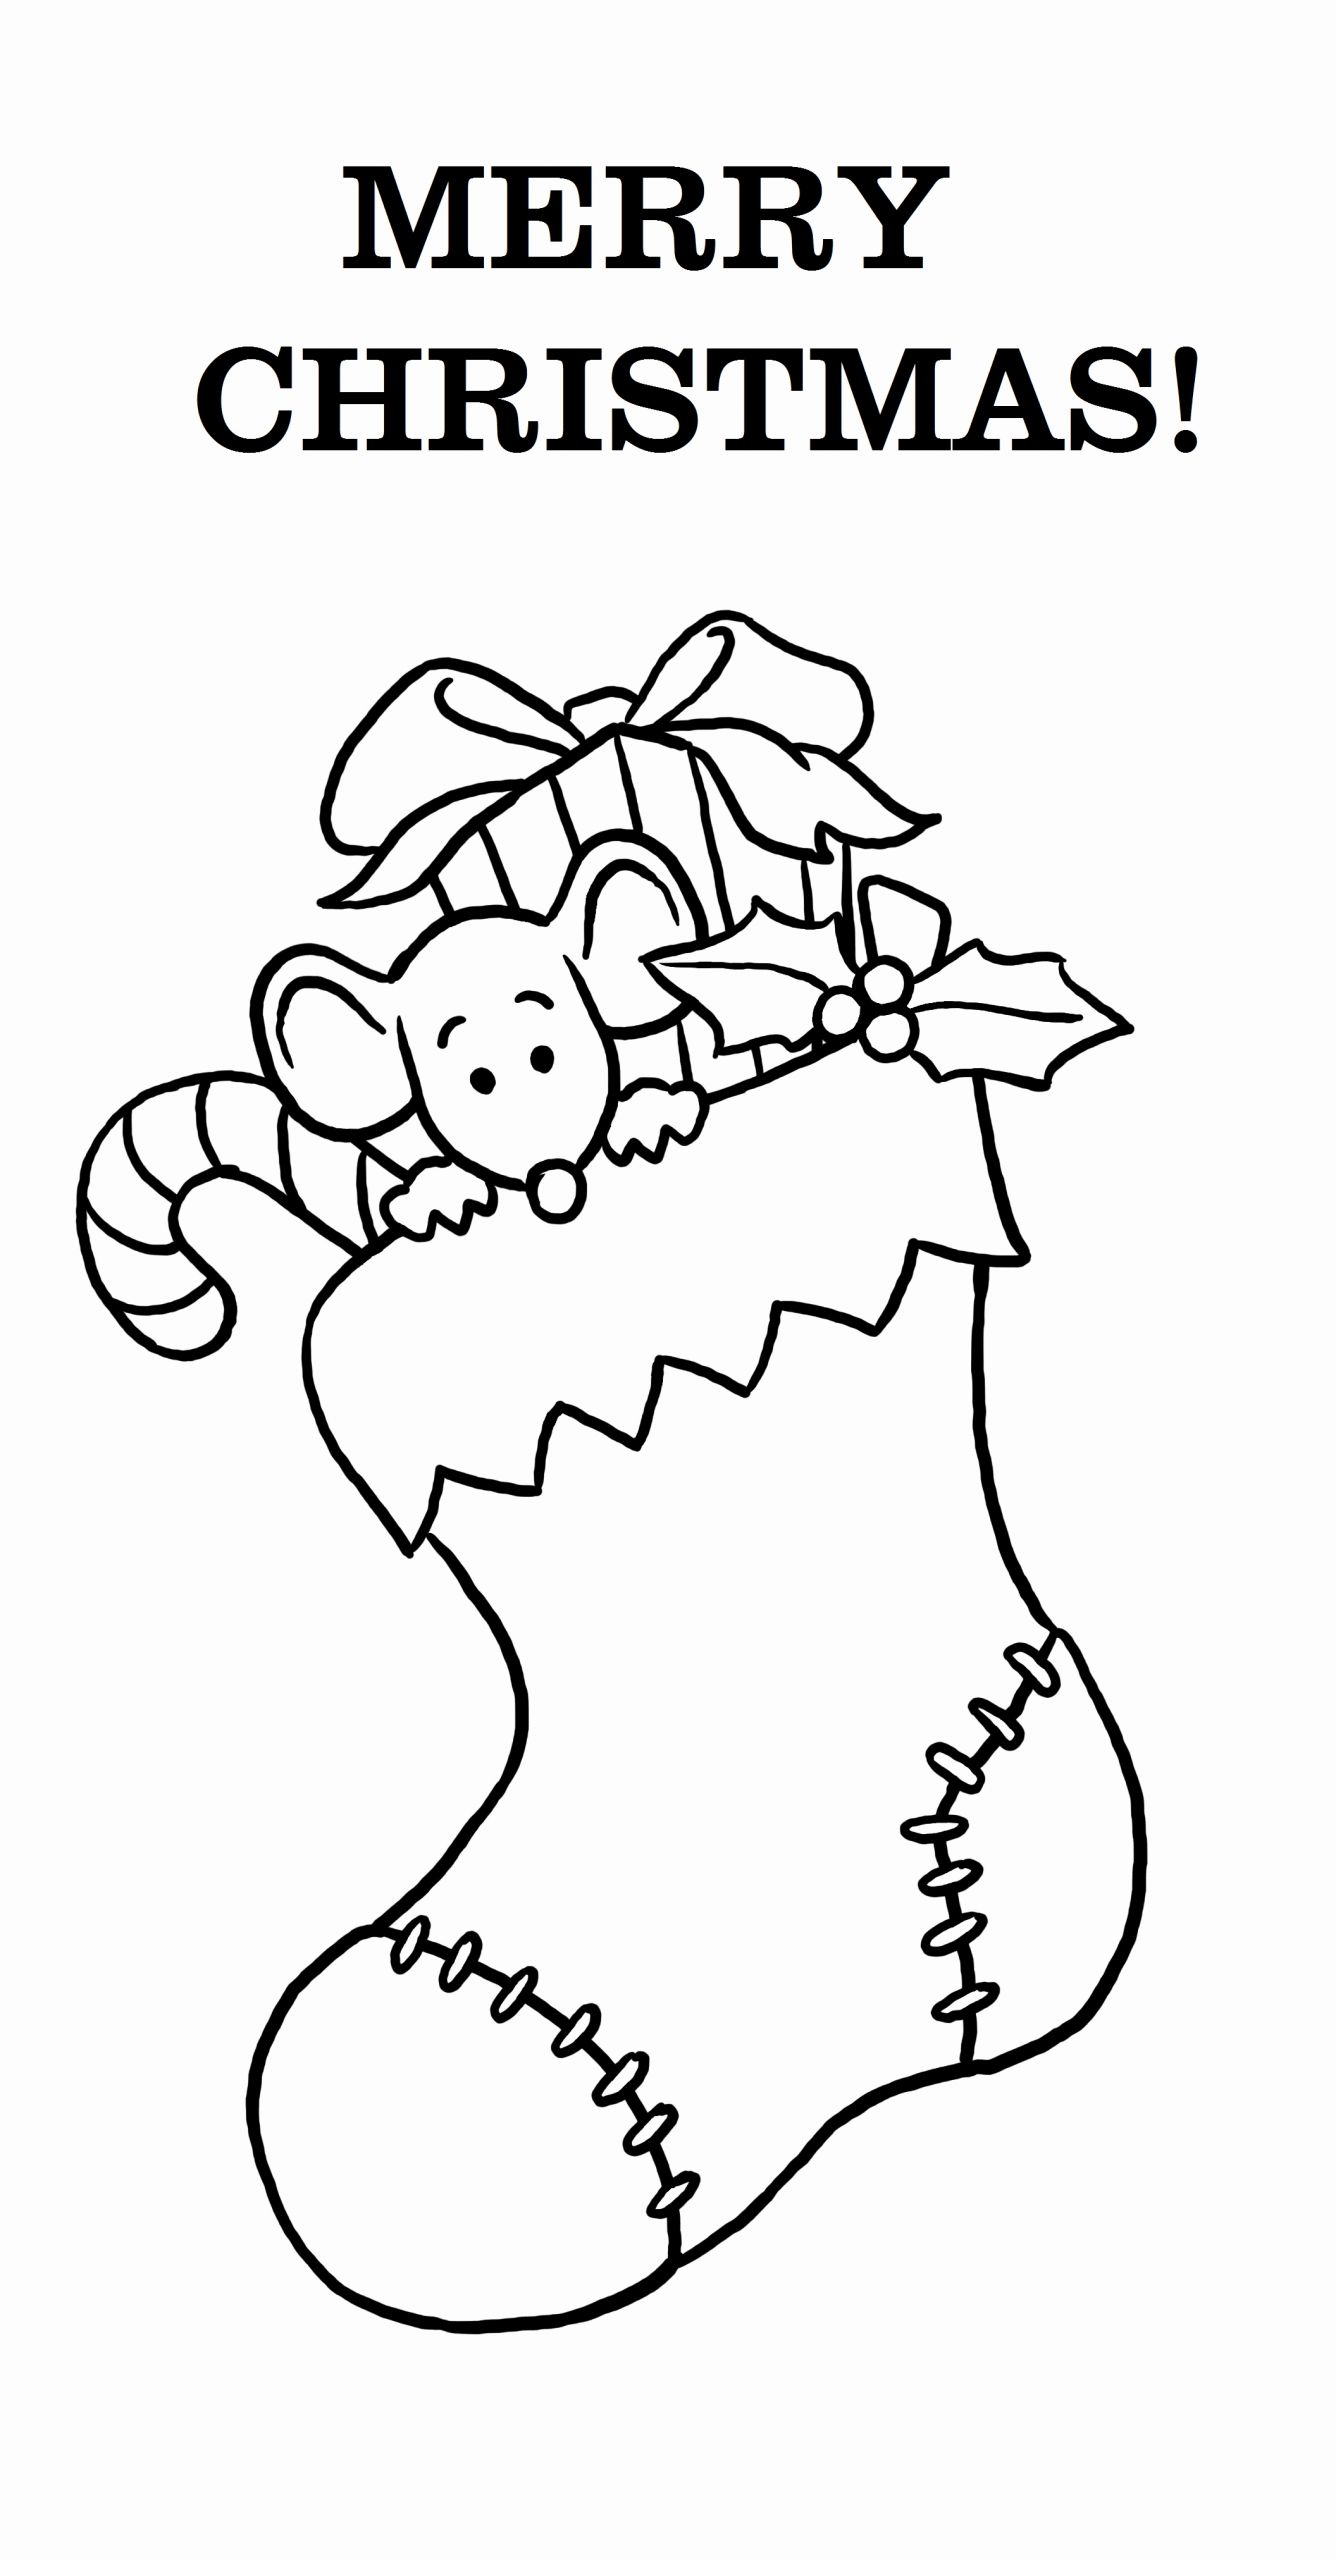 Free Printable Christmas Coloring Pages or Free Printable Merry Christmas Coloring Pages